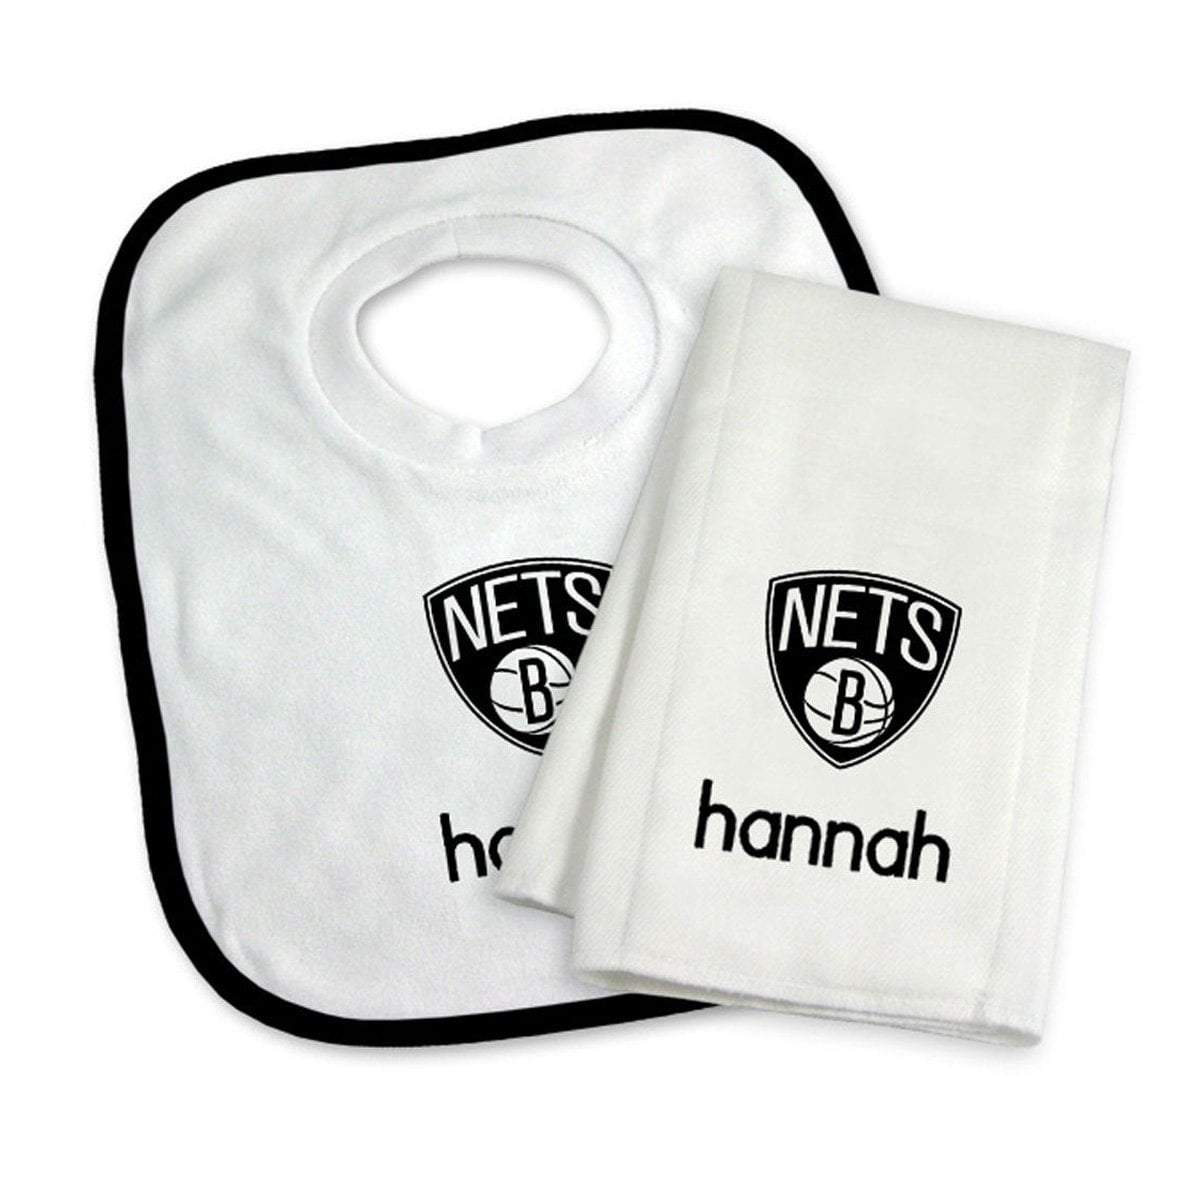 Chad & Jake Accessories Brooklyn Nets Personalized Bib and Burp Cloth Set by Chad & Jake